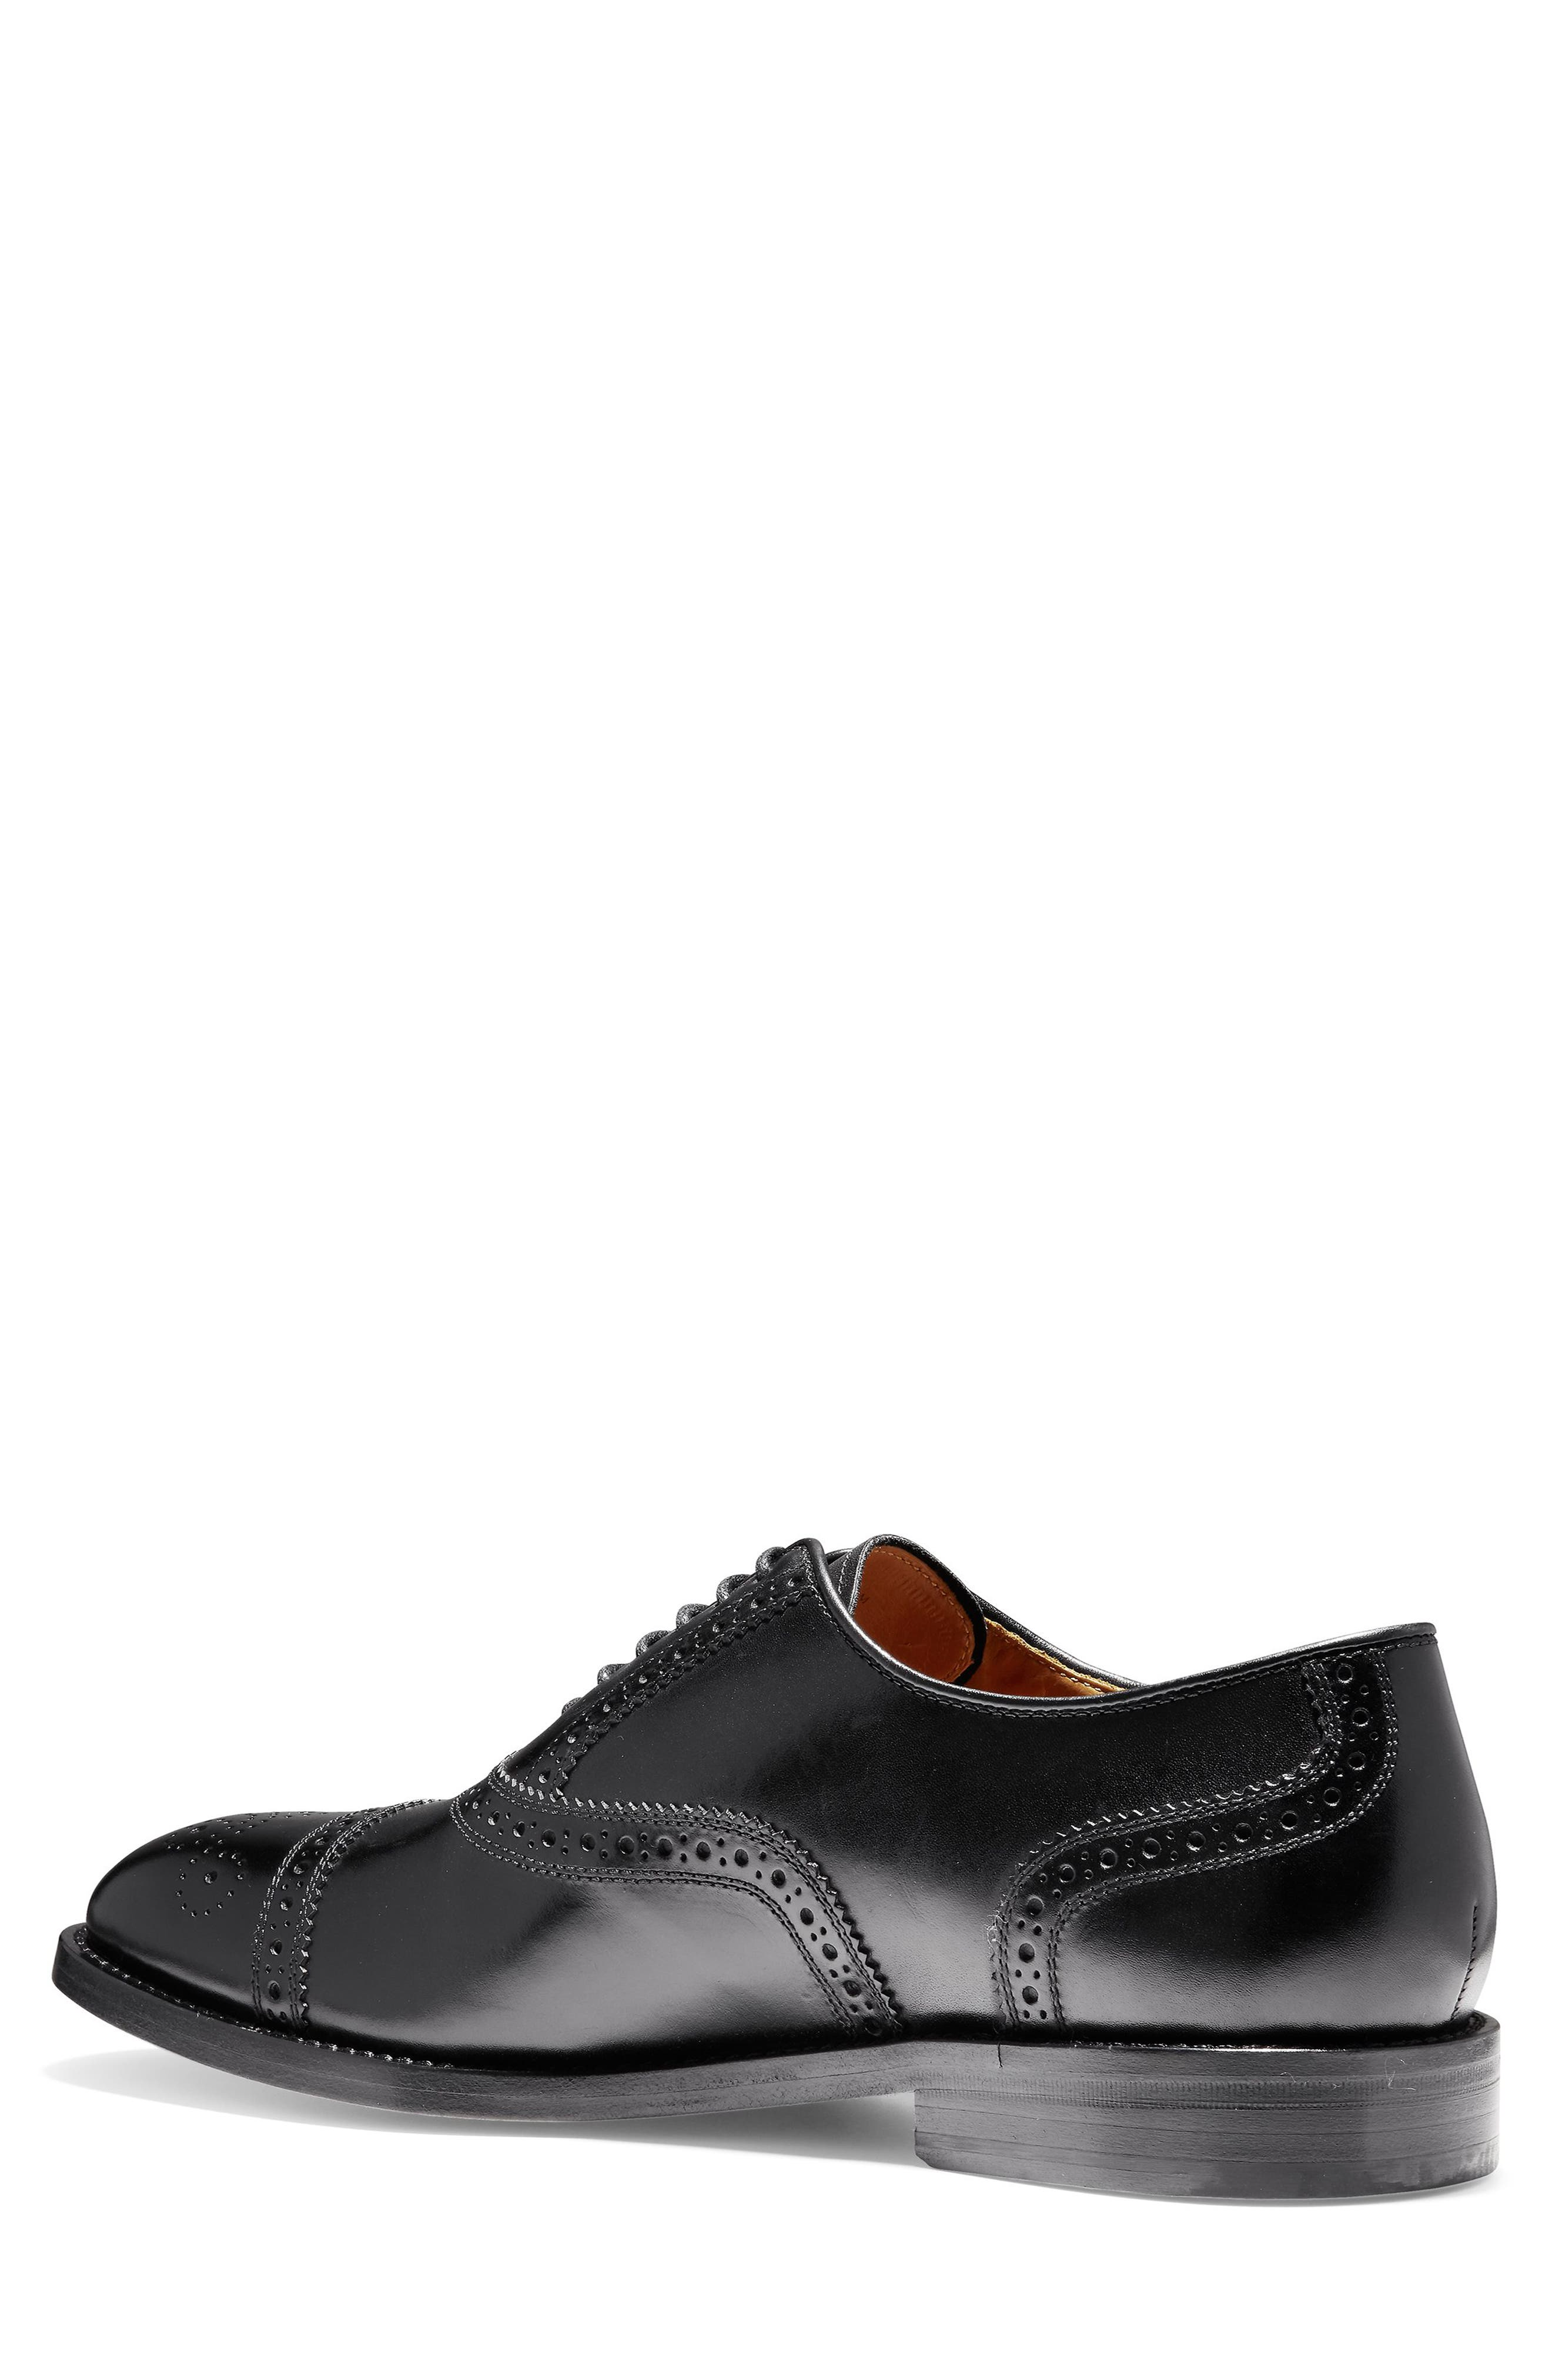 American Classics Kneeland Cap Toe Oxford,                             Alternate thumbnail 2, color,                             BLACK LEATHER